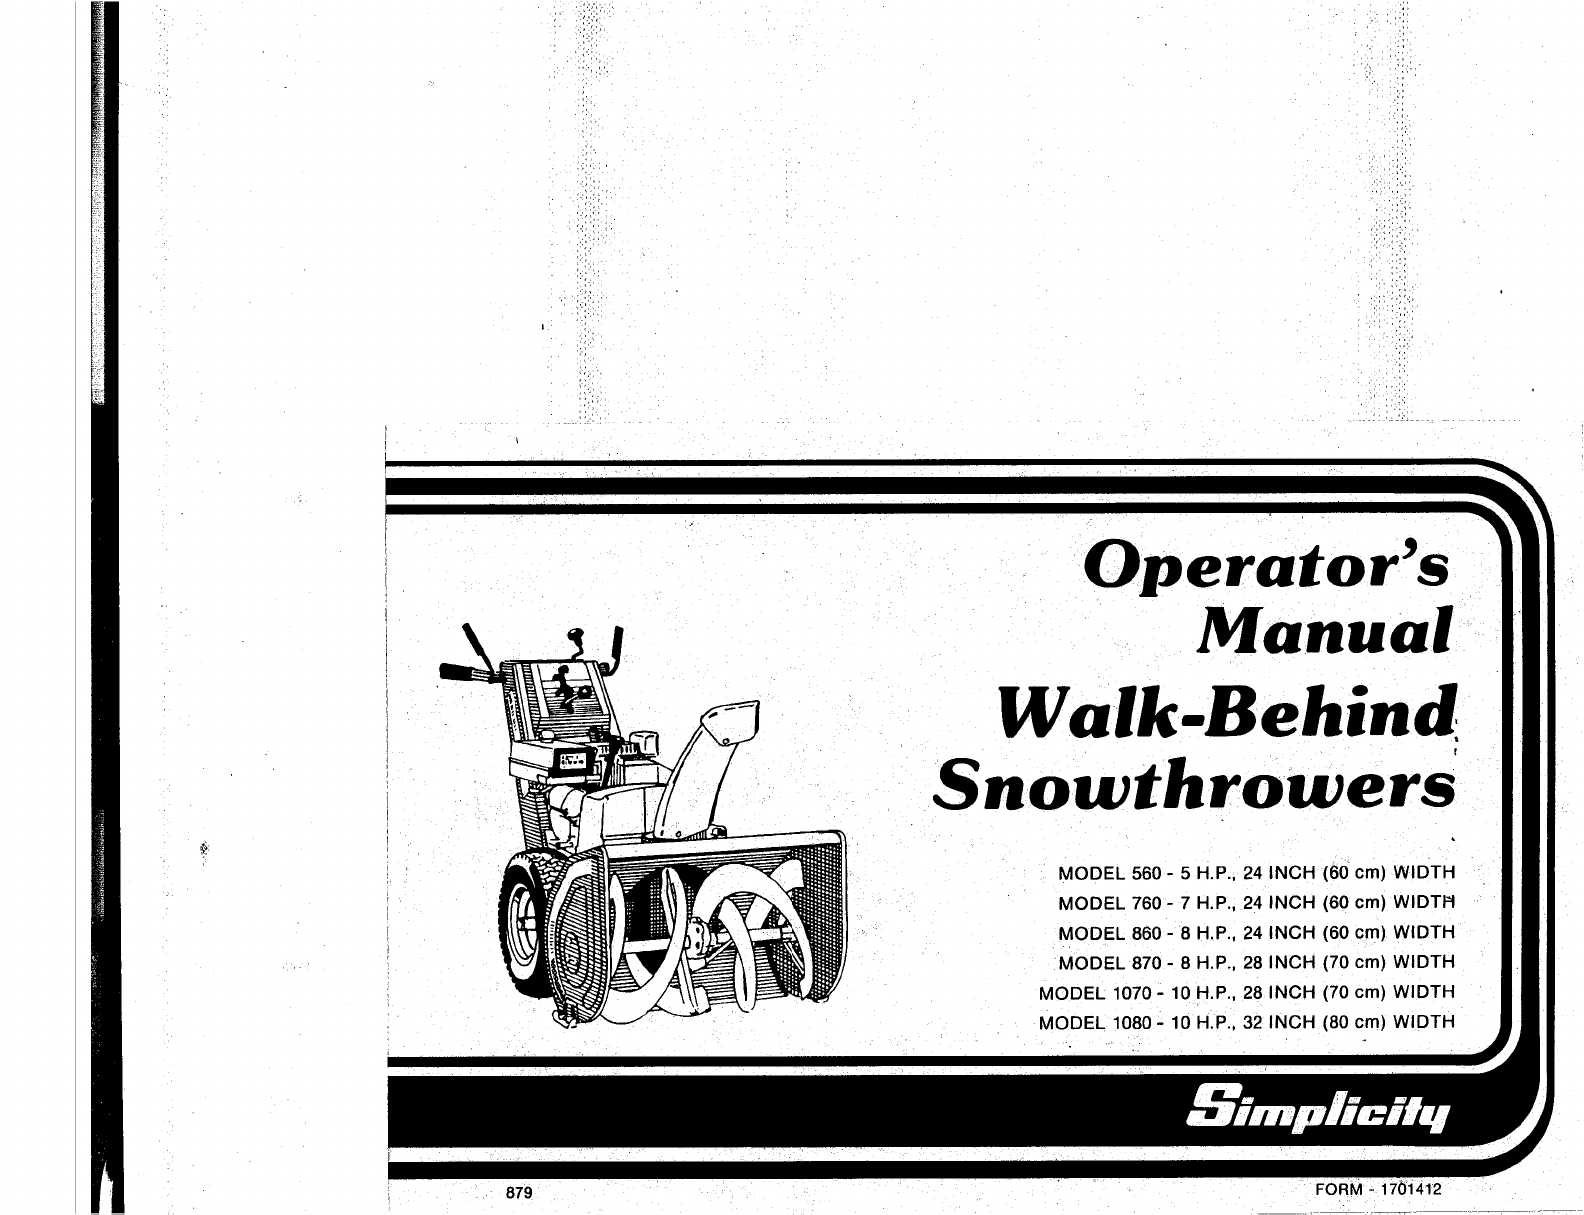 simplicity snow blower 560 user guide manualsonline com rh manualsonline com Simplicity Parts List Simplicity 860 Snowblower Parts